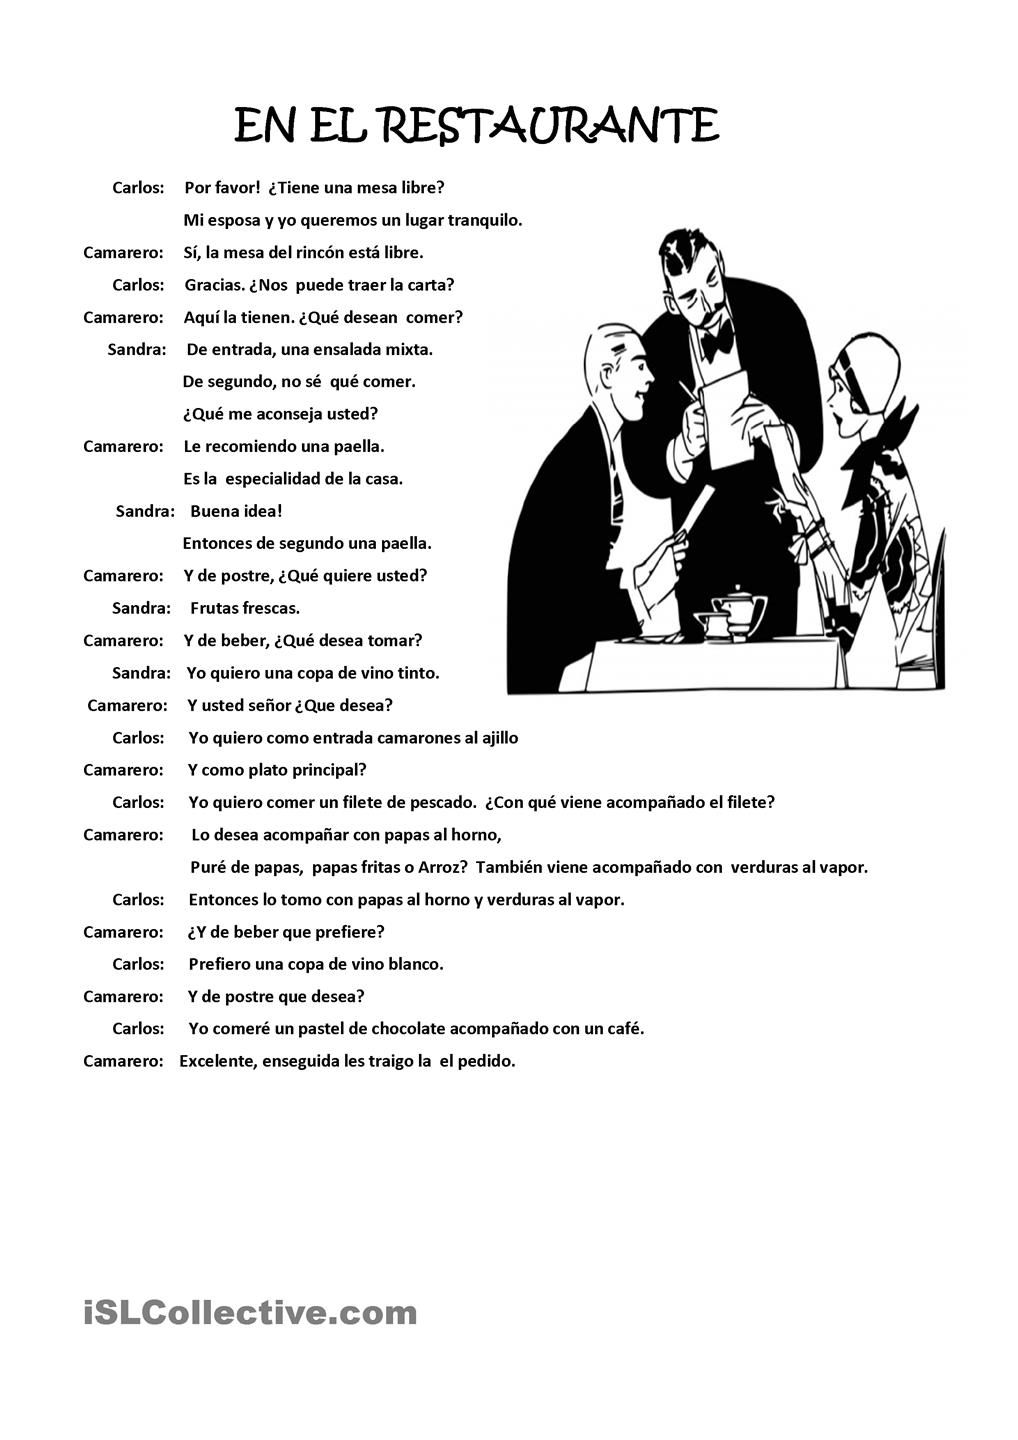 dialogue between customers and waiter in a restaurant. | comida y